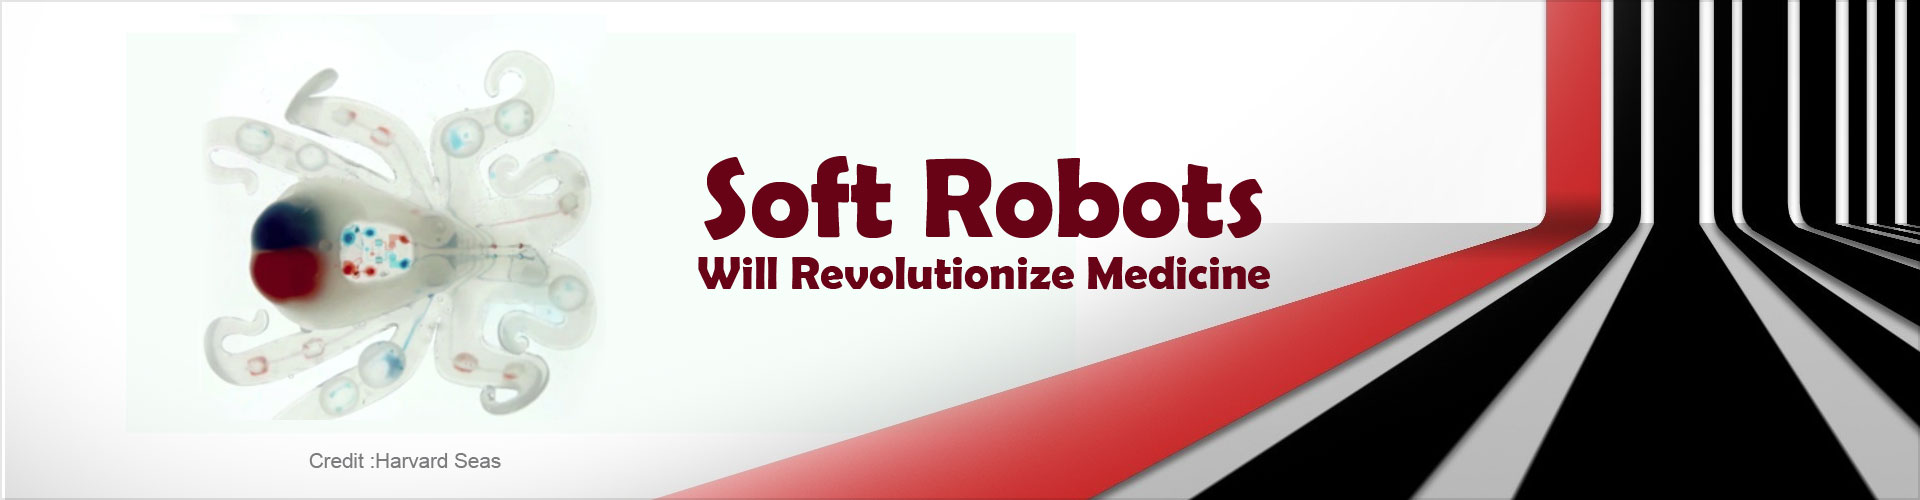 Soft Robot Sans Batteries and Circuits to Revolutionize Medicine